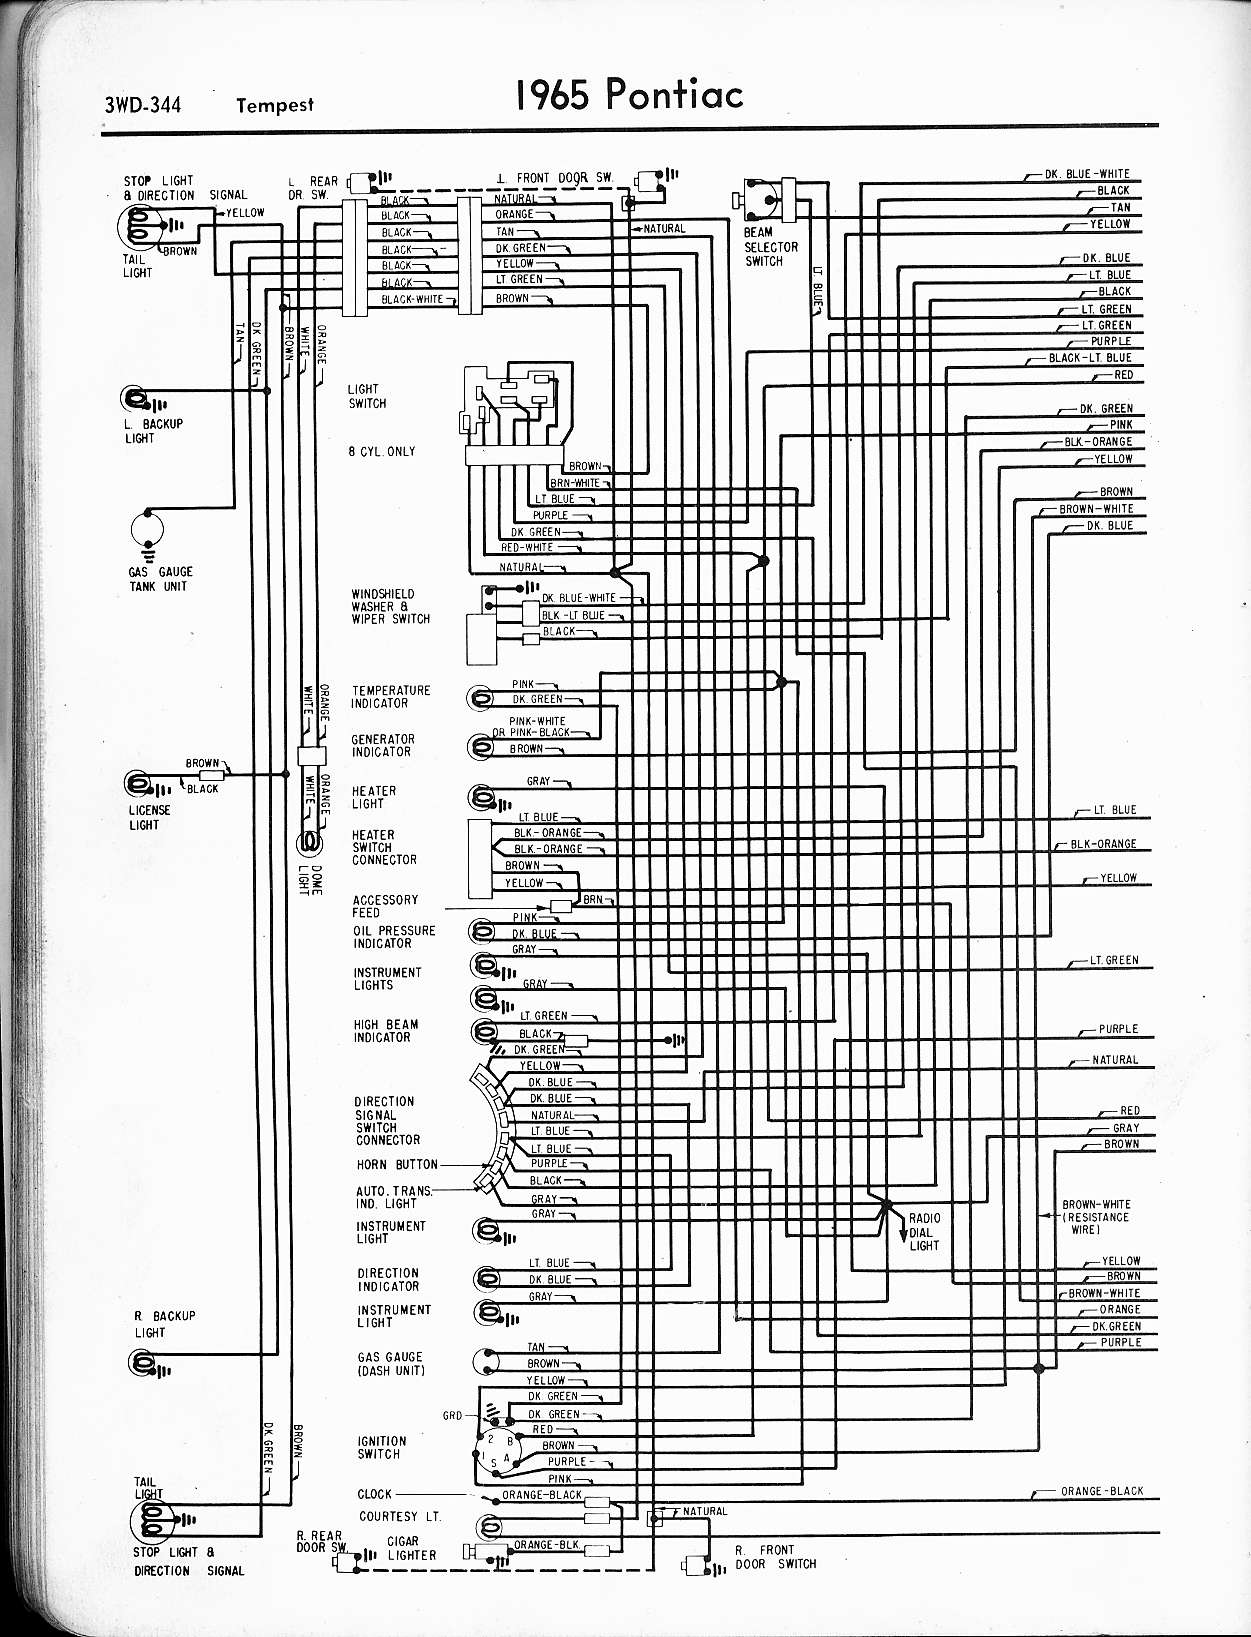 4g91 carburetor wiring diagram skyline r33 gtst 66 chevelle turn signal library wallace racing diagrams 65 gto horn 1965 tempest left page